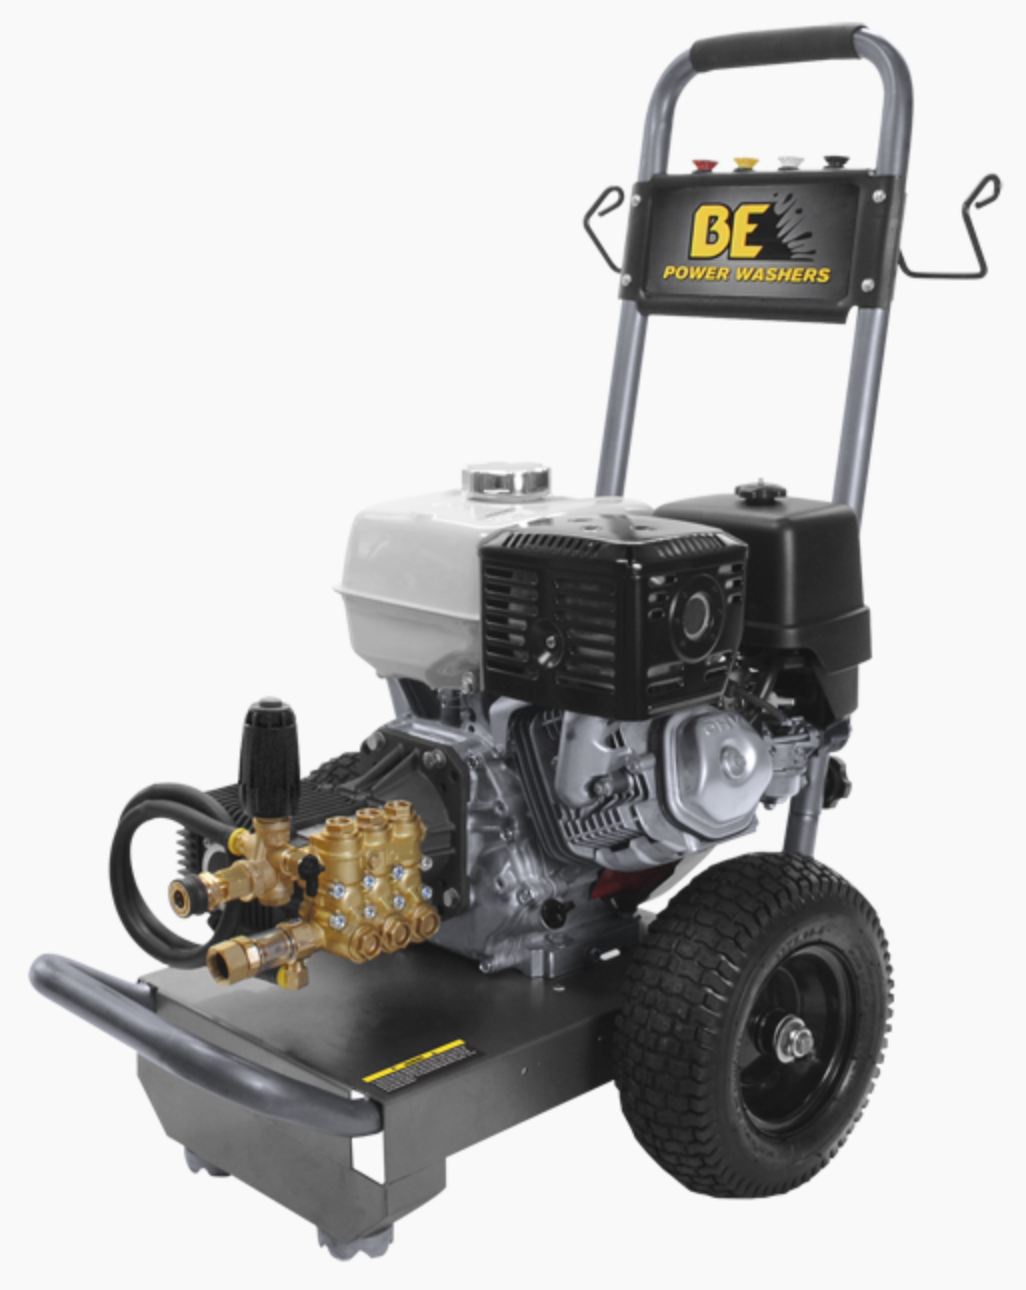 Gas Pressure Washer 4000 psi Image